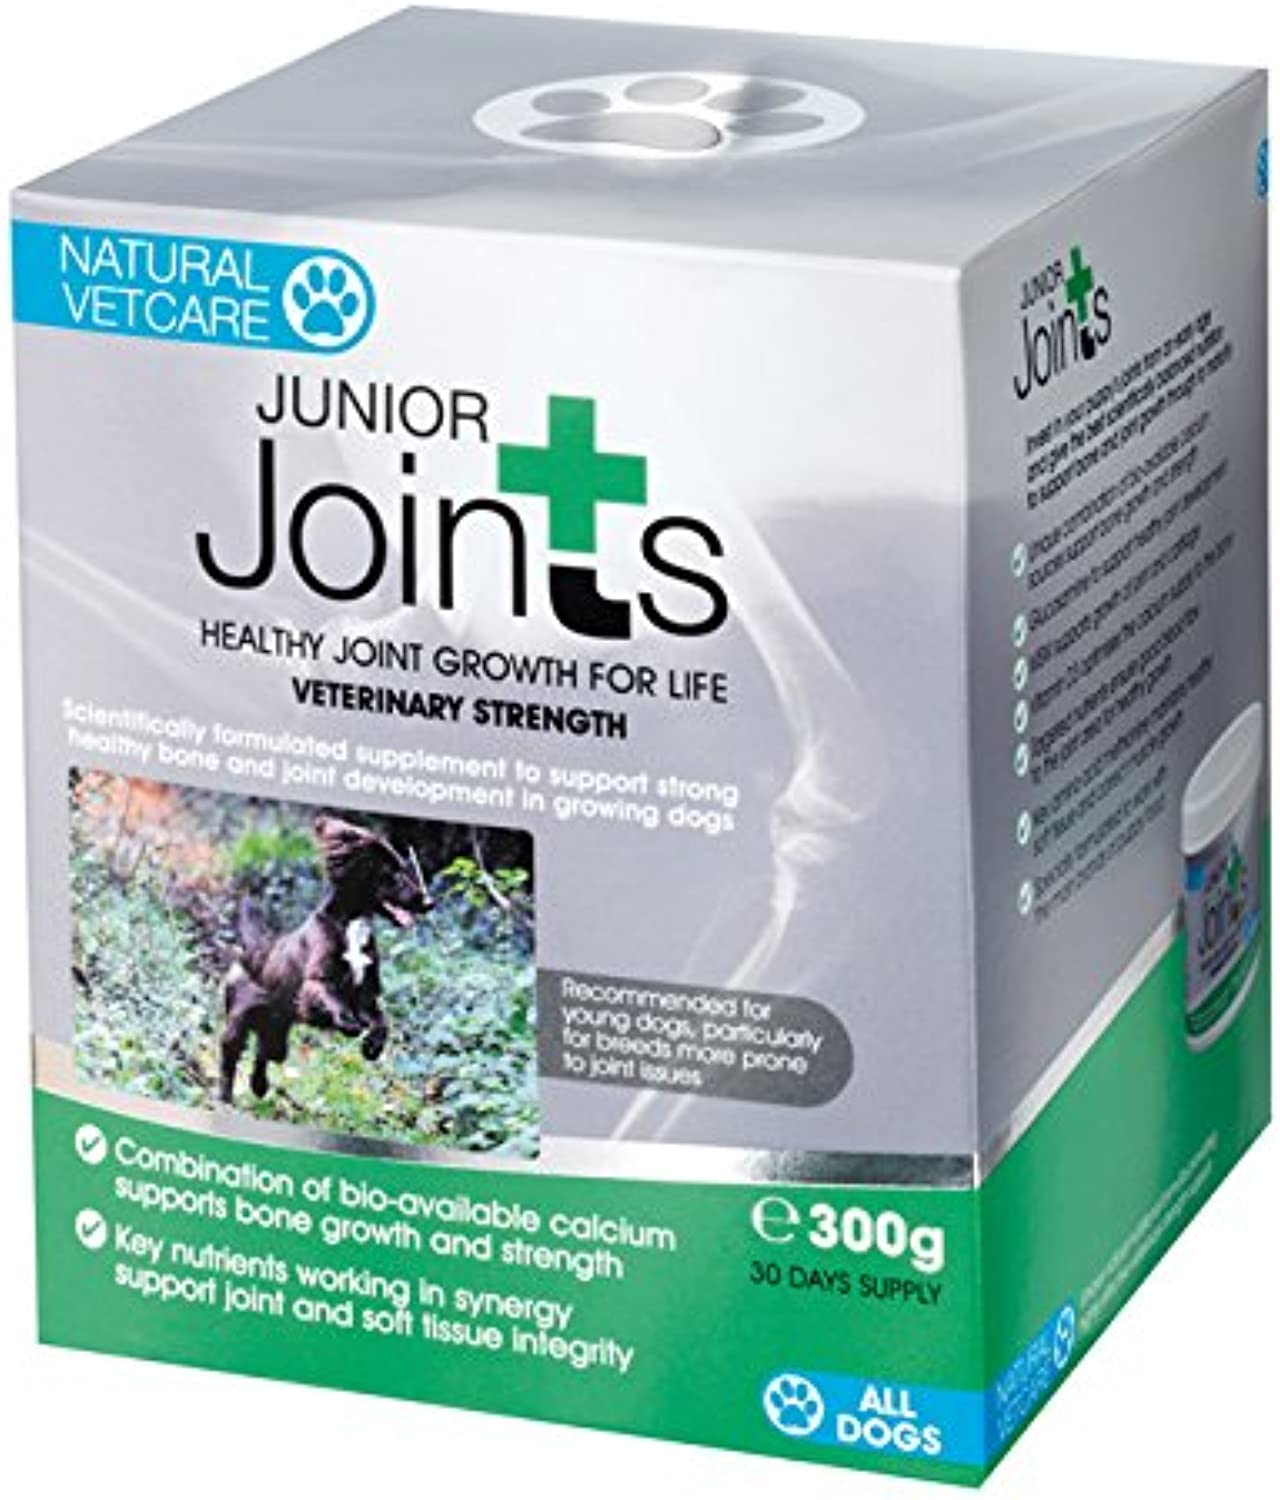 Natural Vet Care Dog Junior Joints